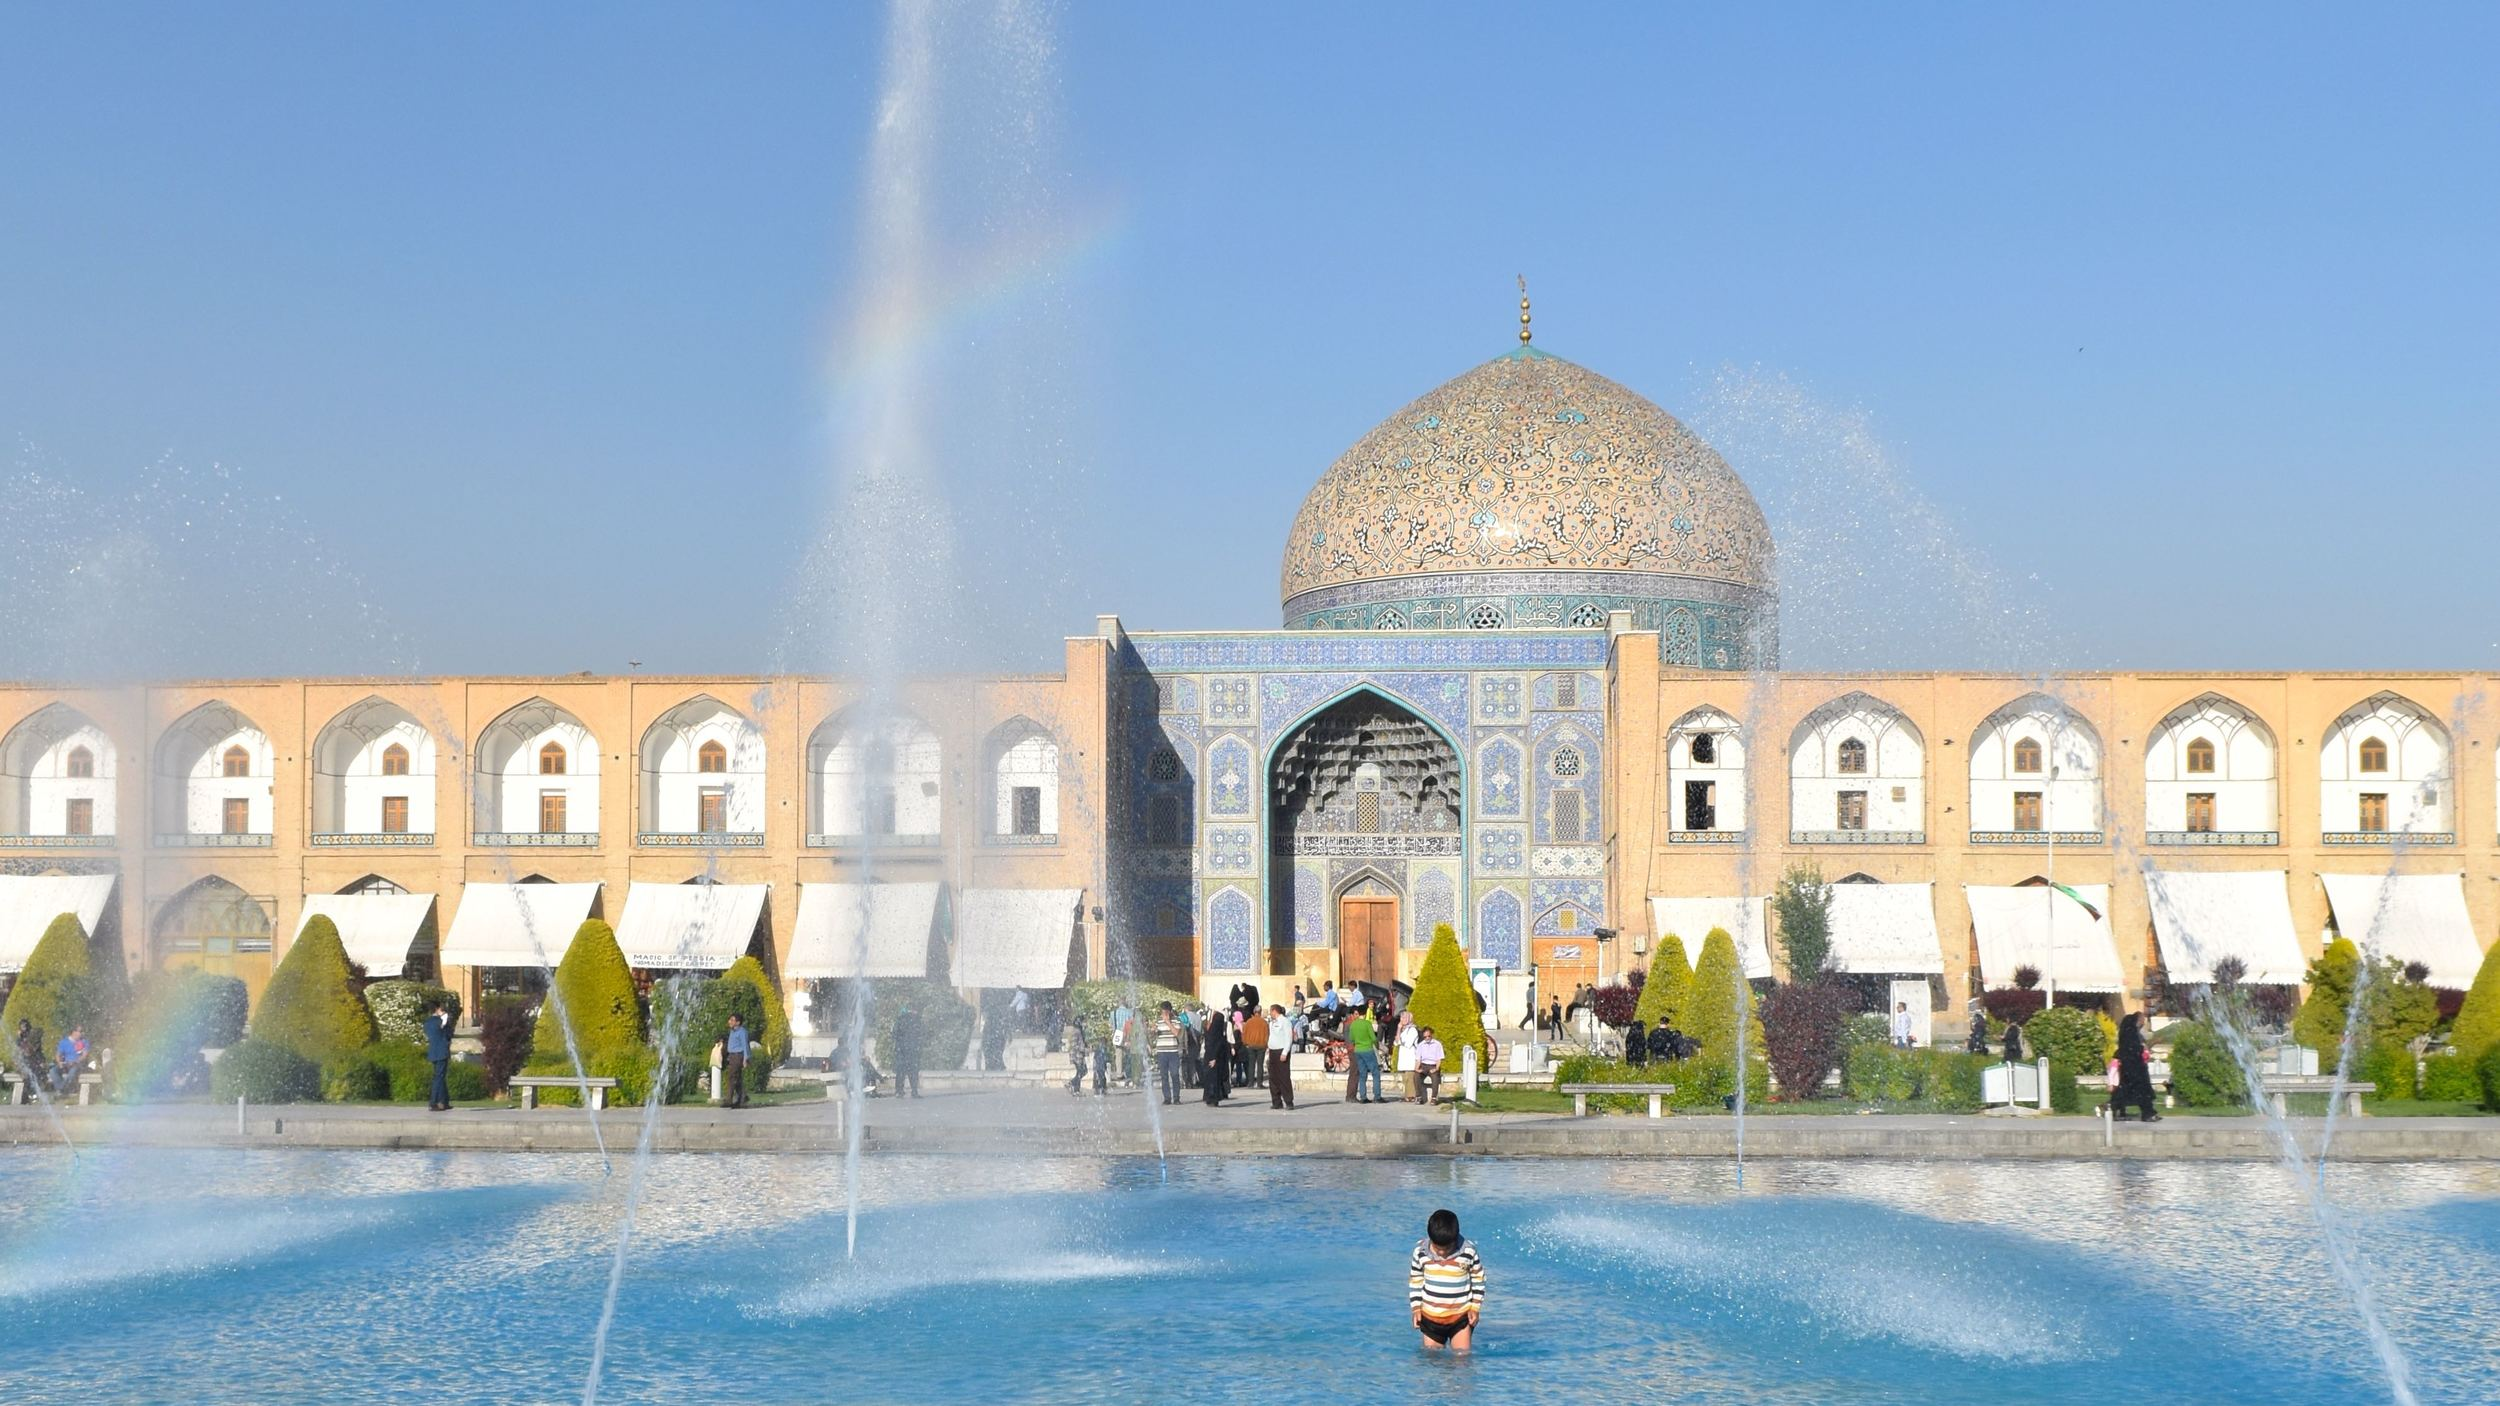 Iran-Isfahan-square-pool-kid